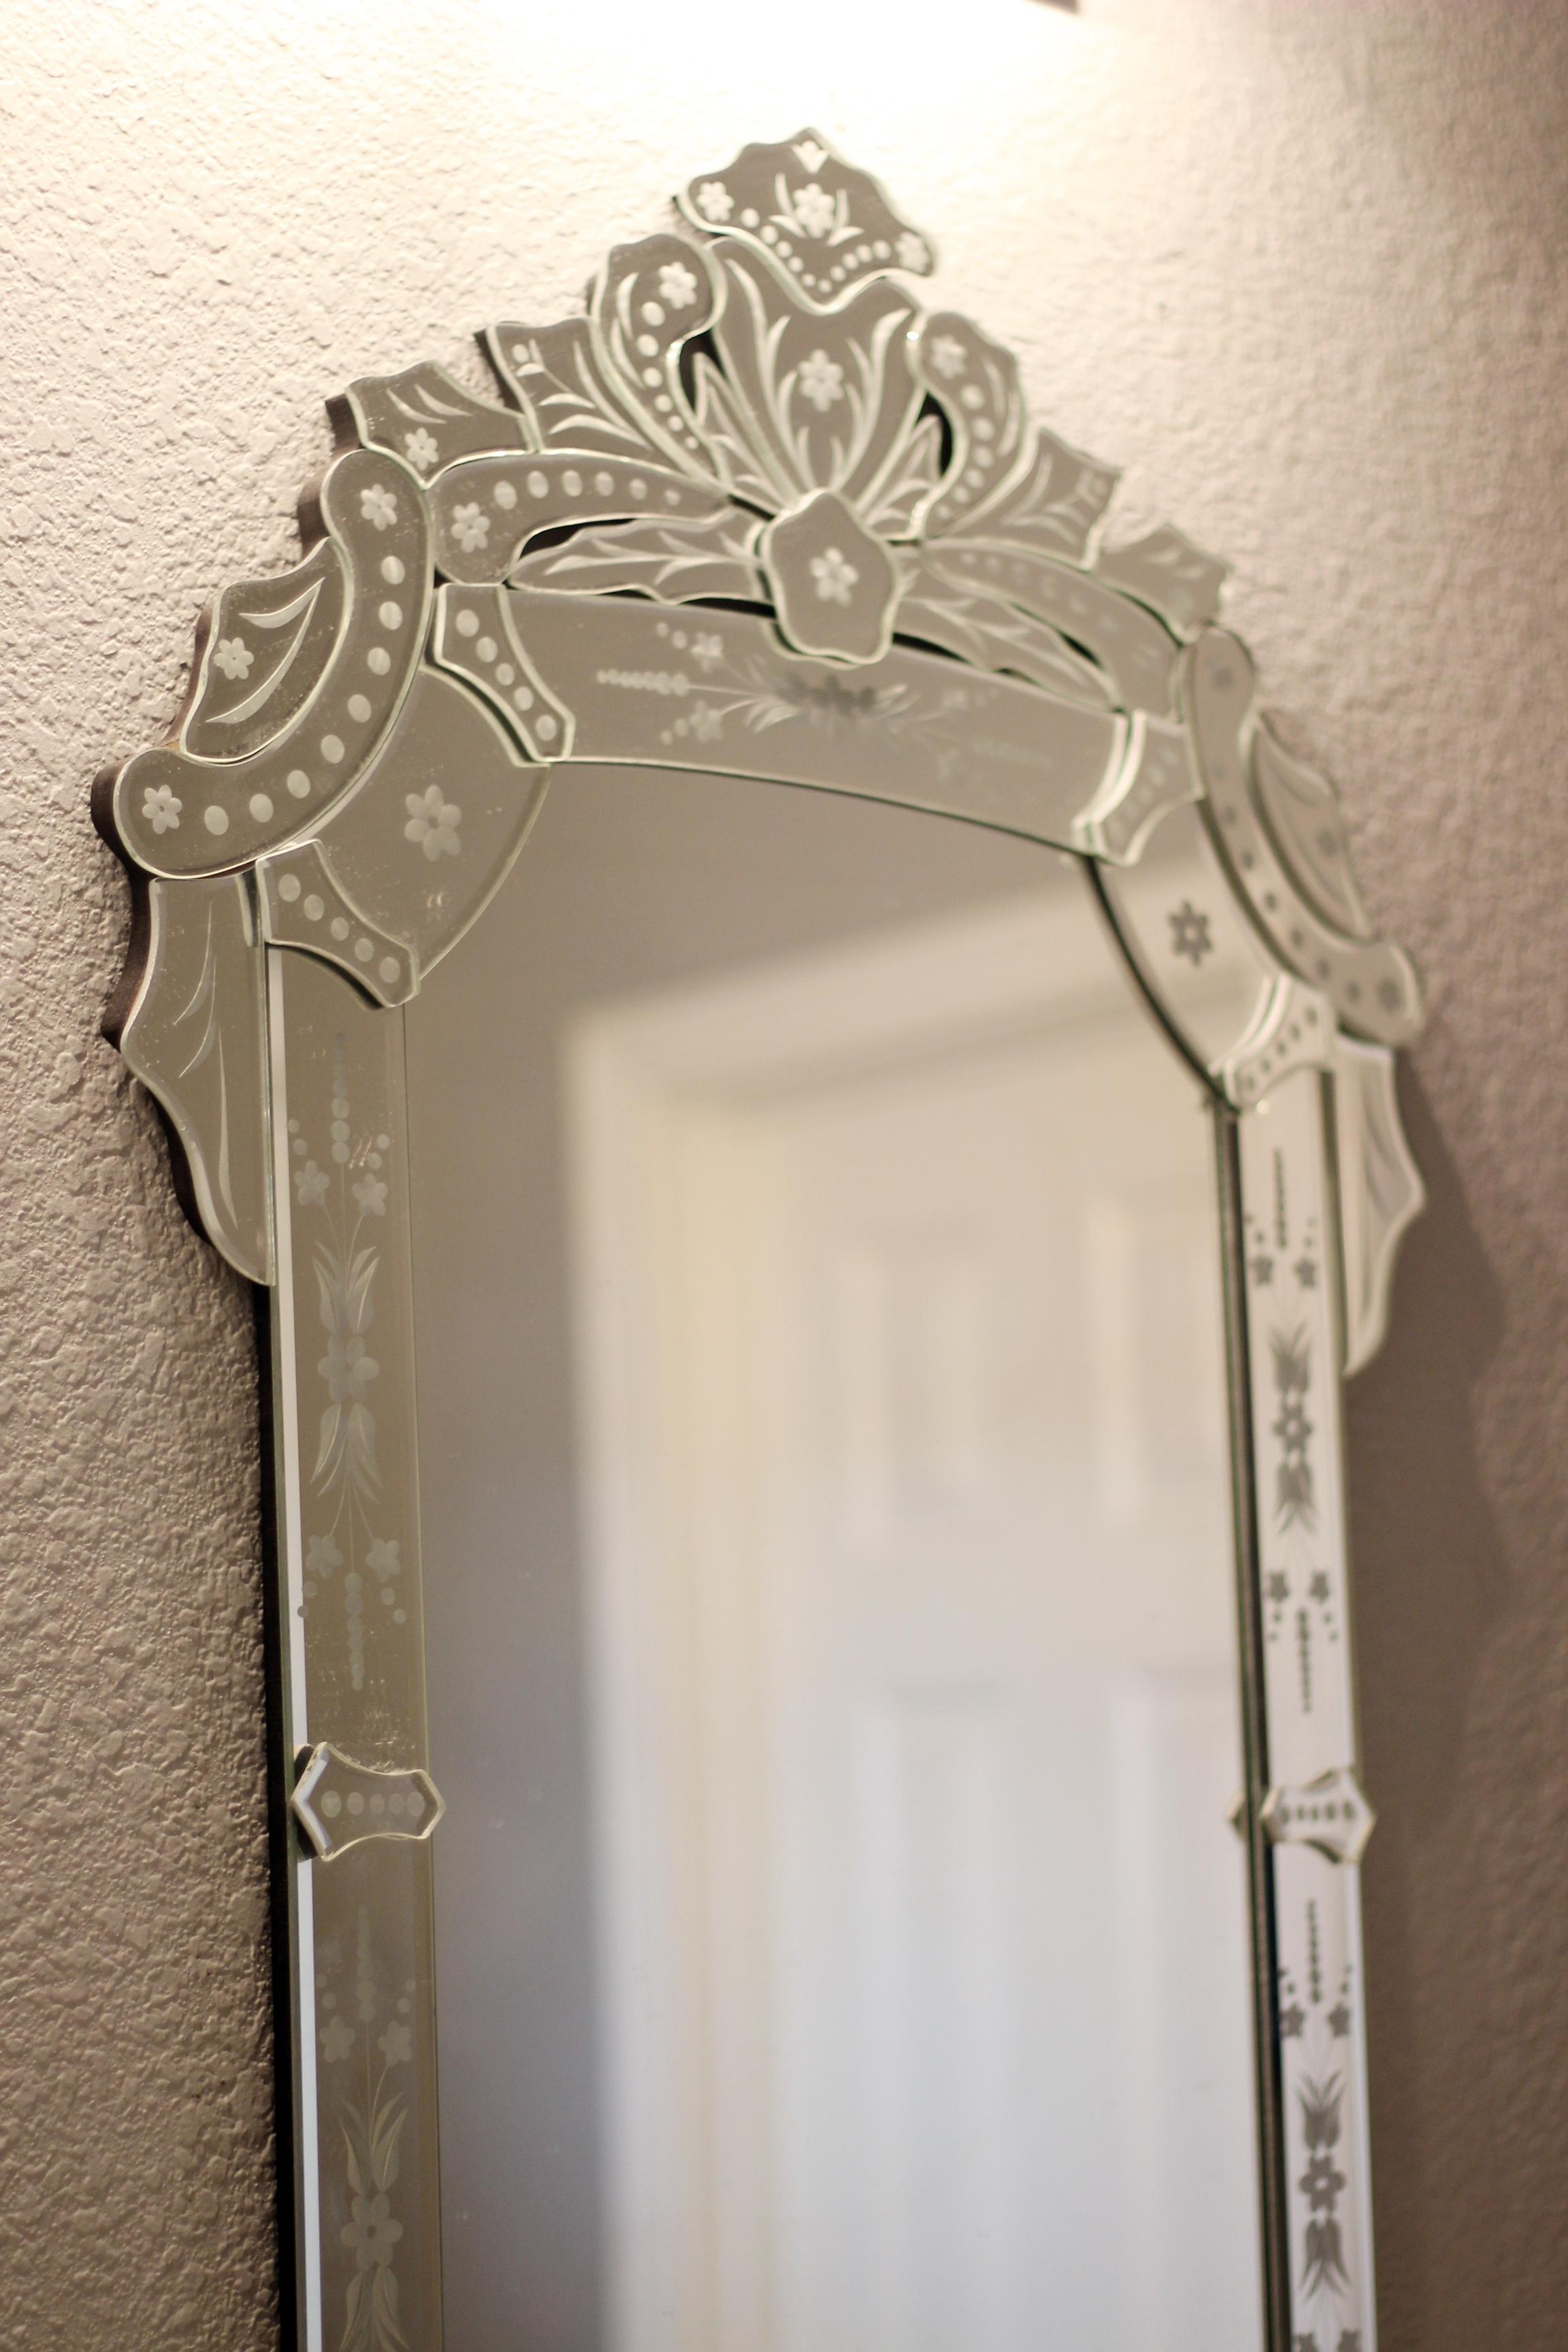 Inexpensive Cheap Venetian Style Mirror | Gusto & Grace Within Venetian Style Mirrors (View 5 of 20)